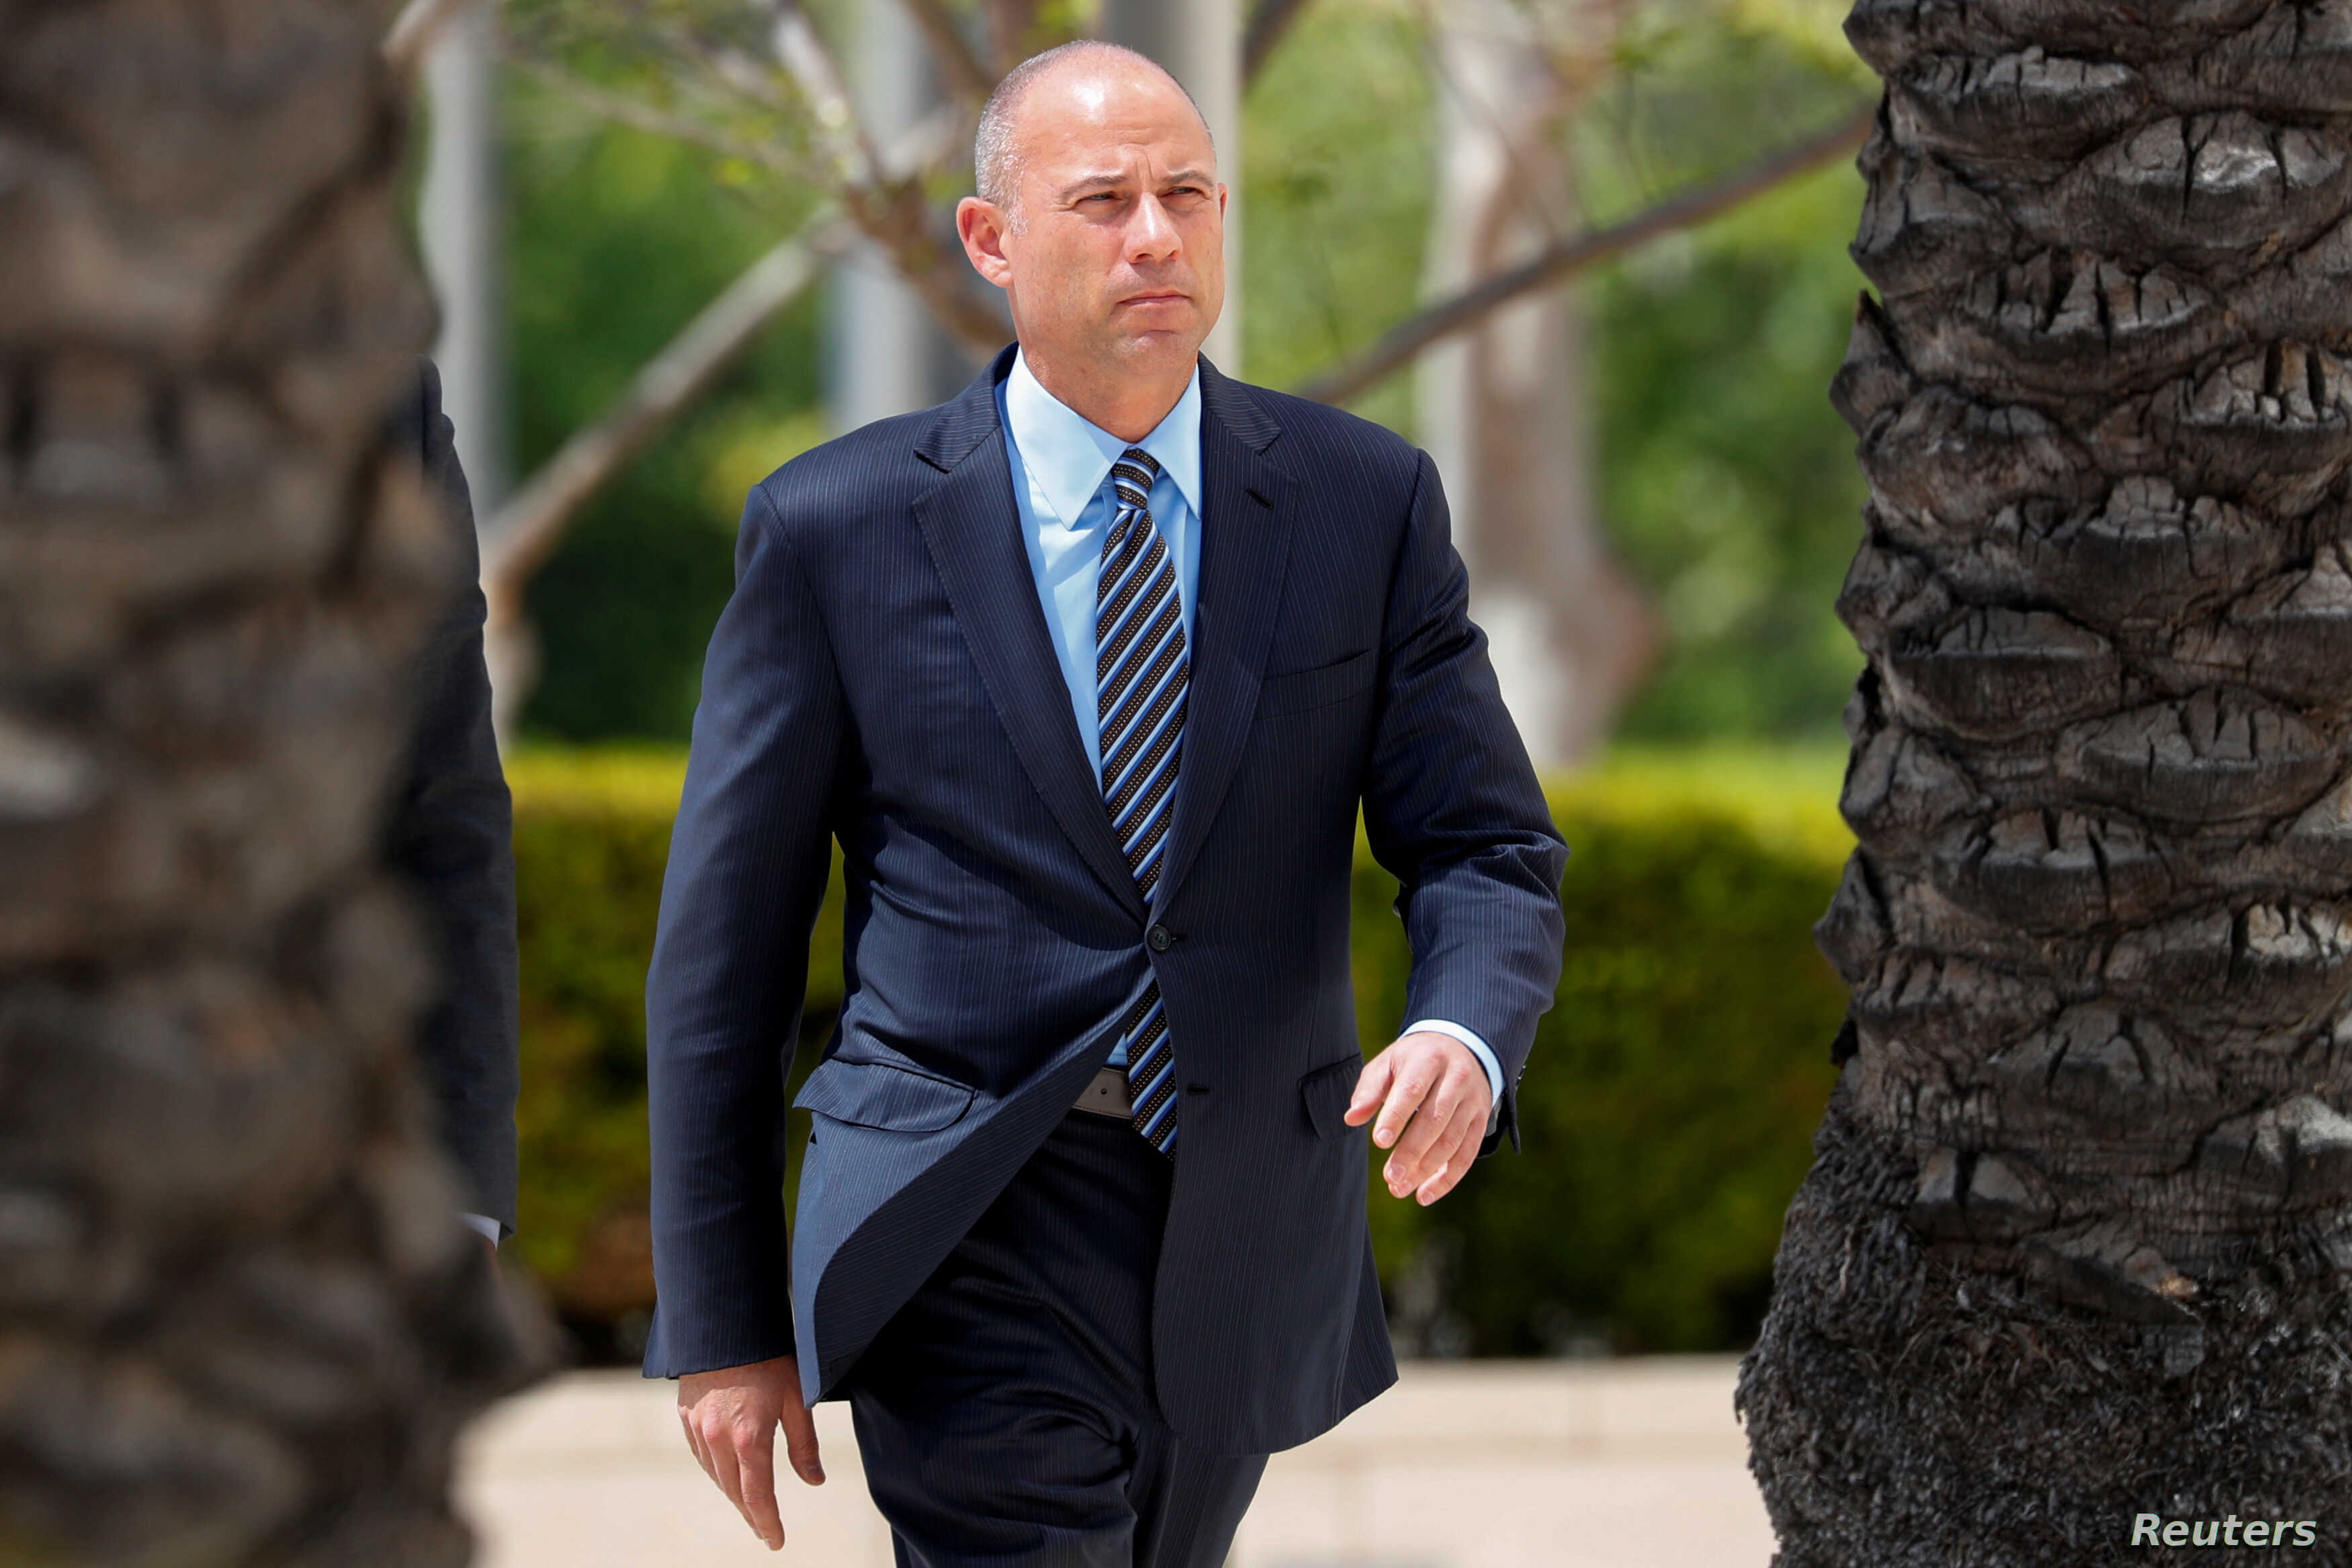 File Attorney Michael Avenatti Makes An Initial Appearance On Charges Of Bank And Wire Fraud As He Arrives At Federal Court In Santa Ana California